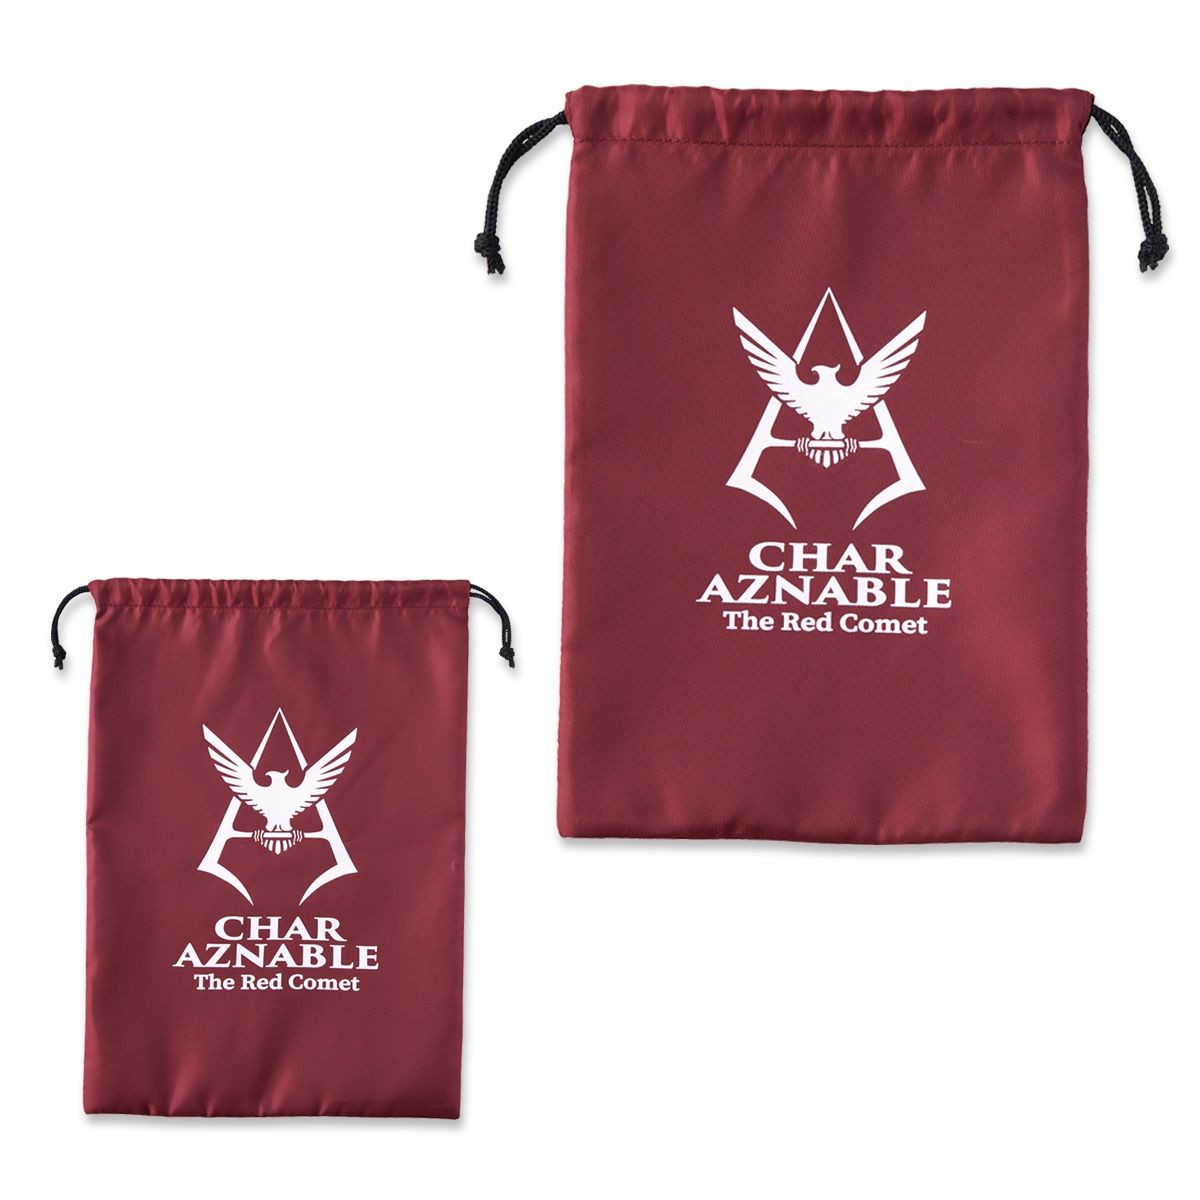 Mobile Suit Gundam Drawstring Bag Set